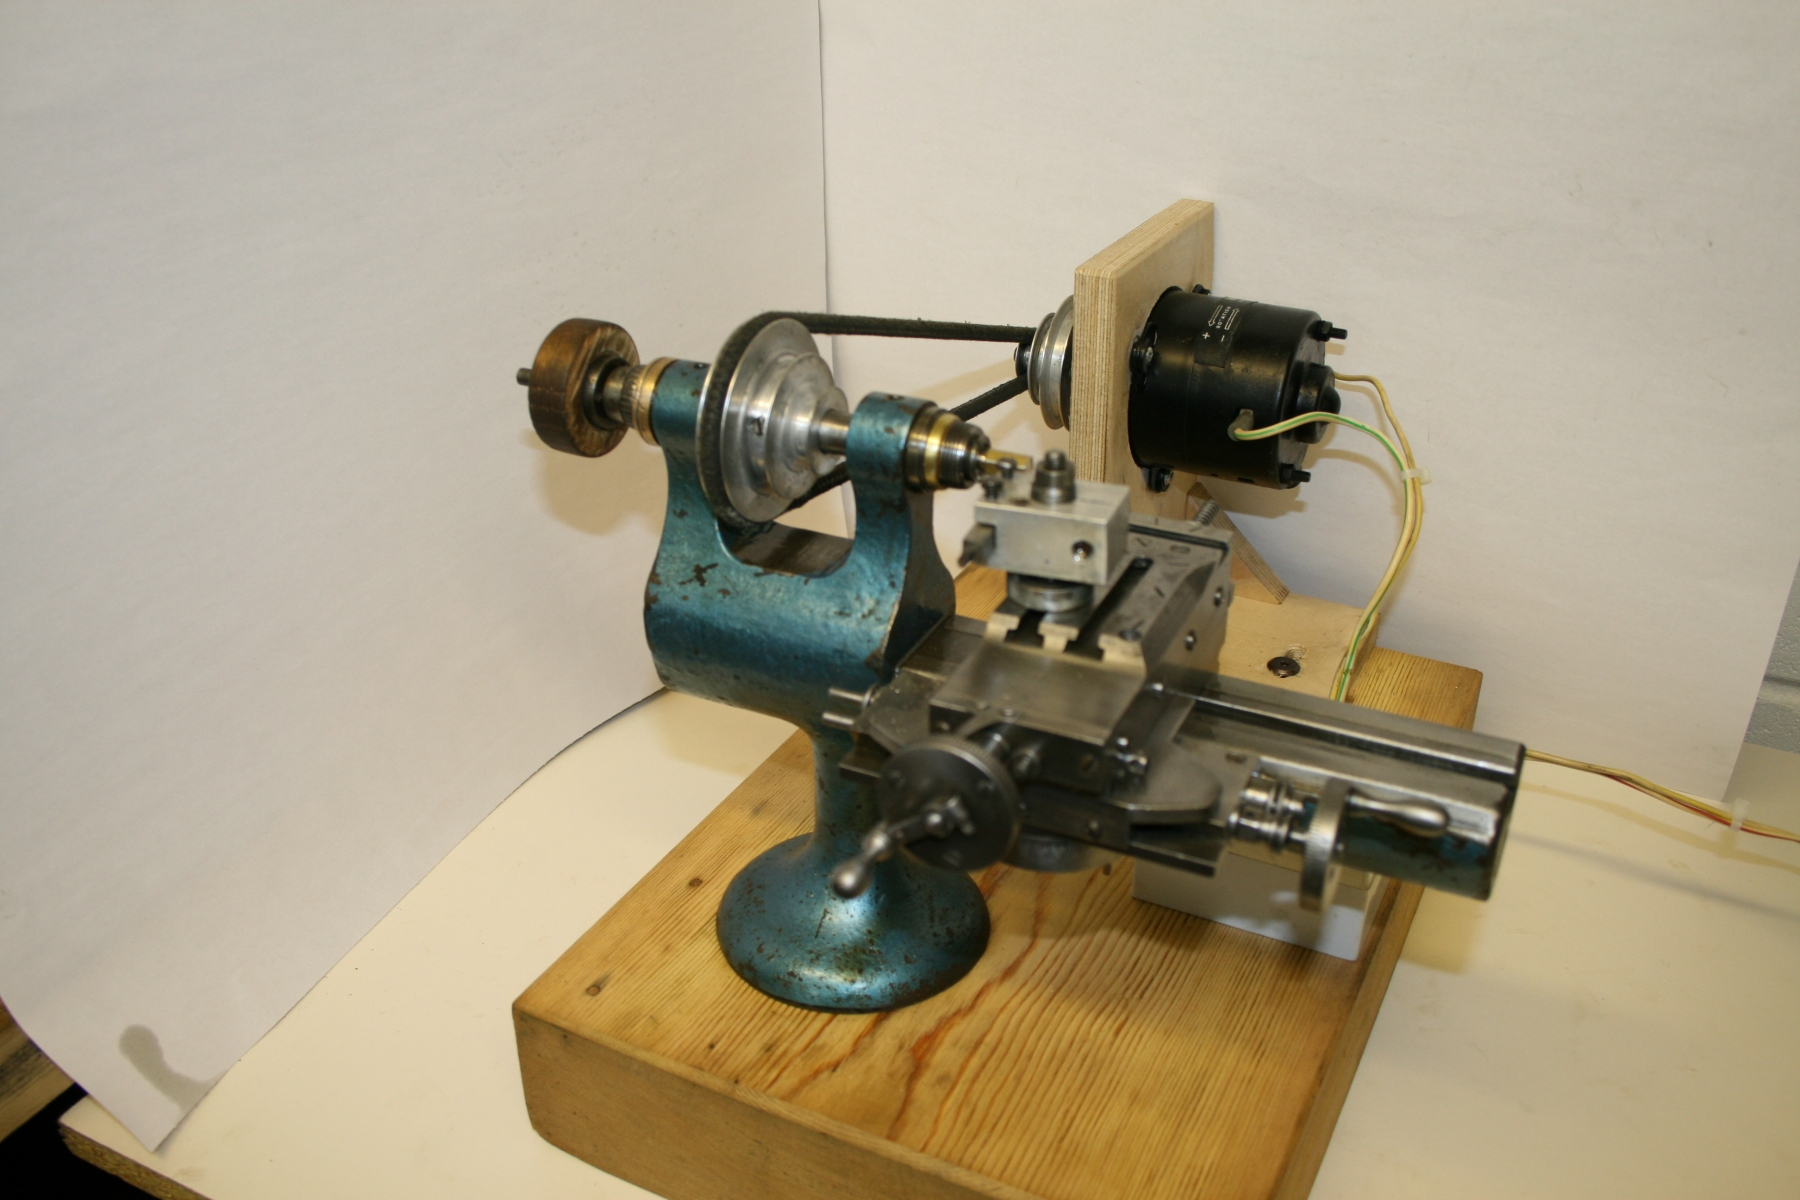 Watchmakers style lathe